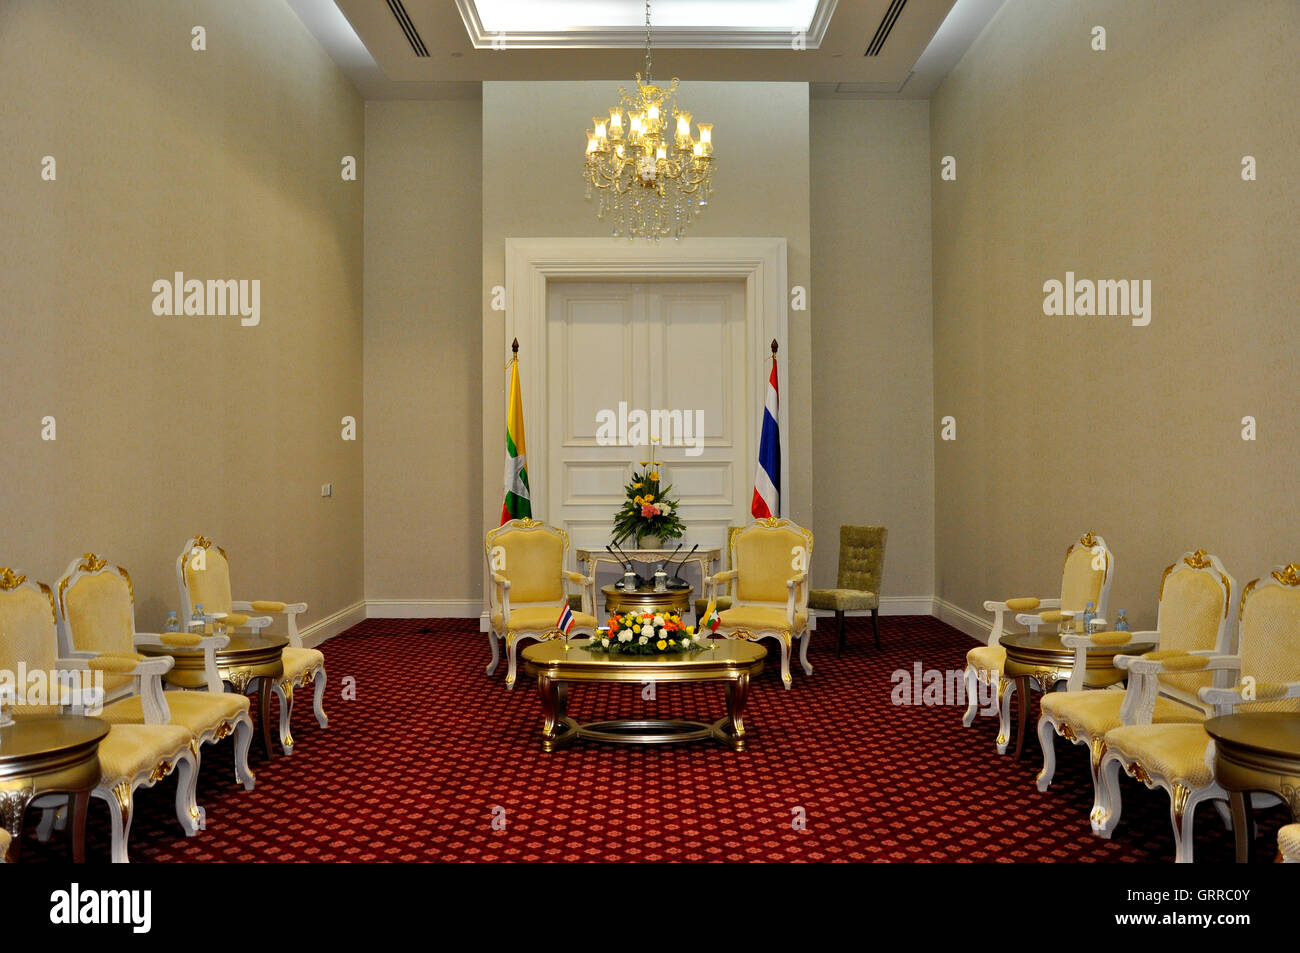 Phnom Penh, Cambodia - 19 November 2012. The bilateral meeting room setup for Prime minister of Myanmar and Thailand. - Stock Image